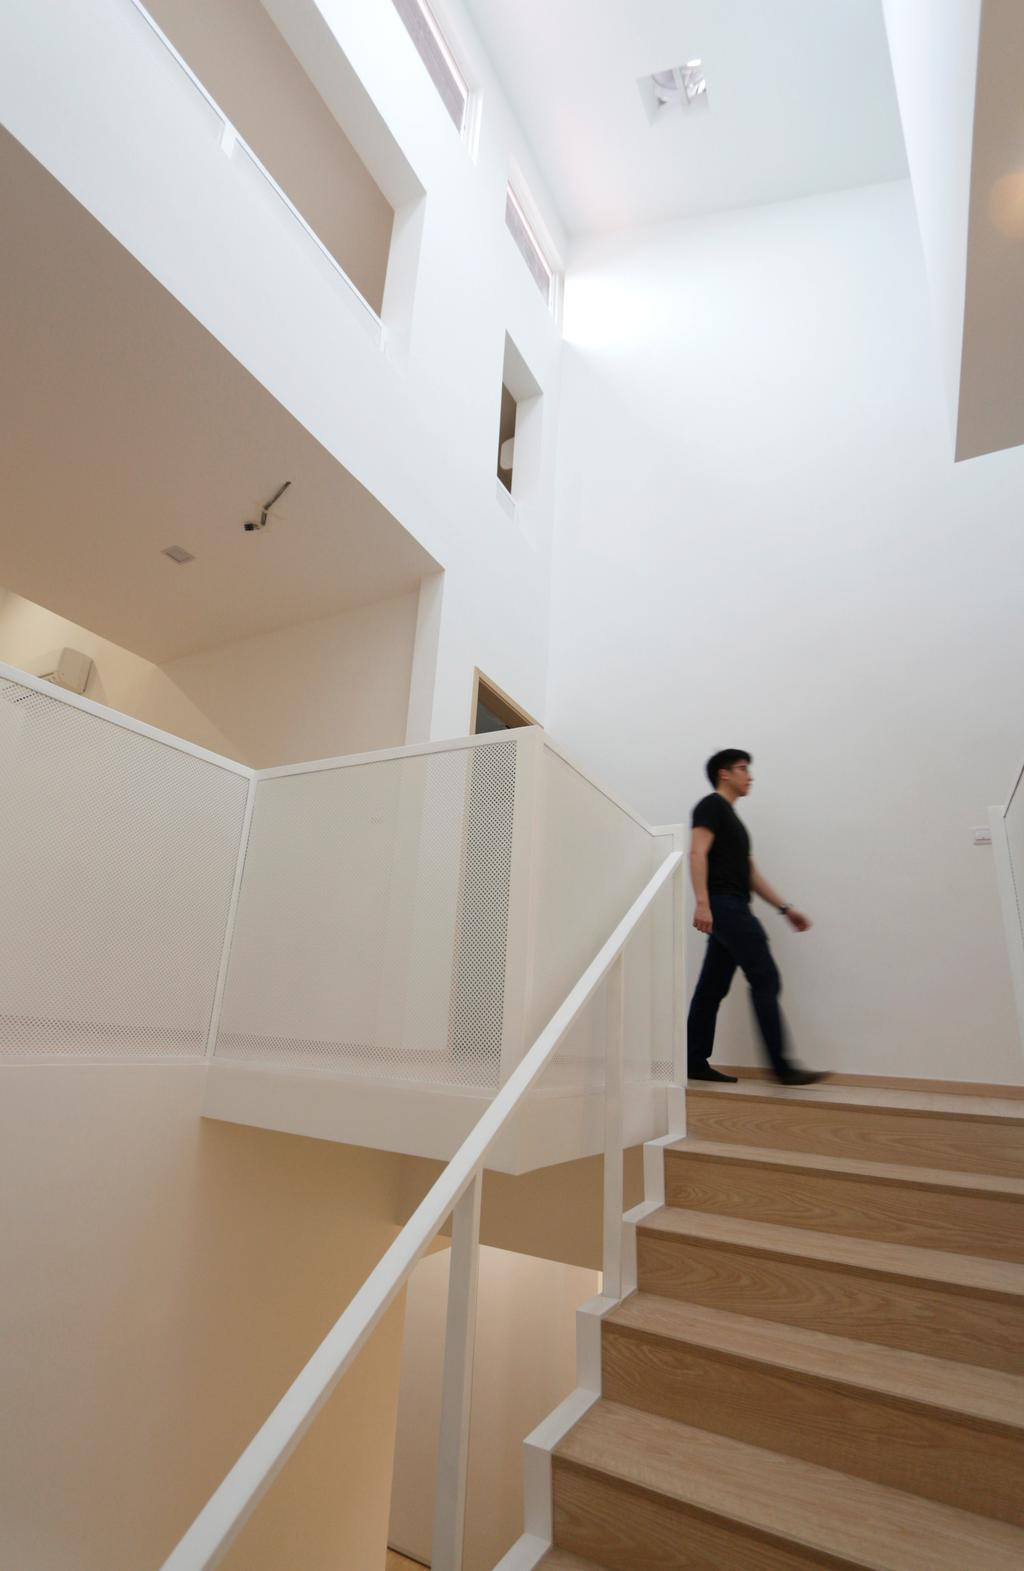 Minimalistic, Landed, Lentor Green, Architect, EHKA Studio, Human, People, Person, Banister, Handrail